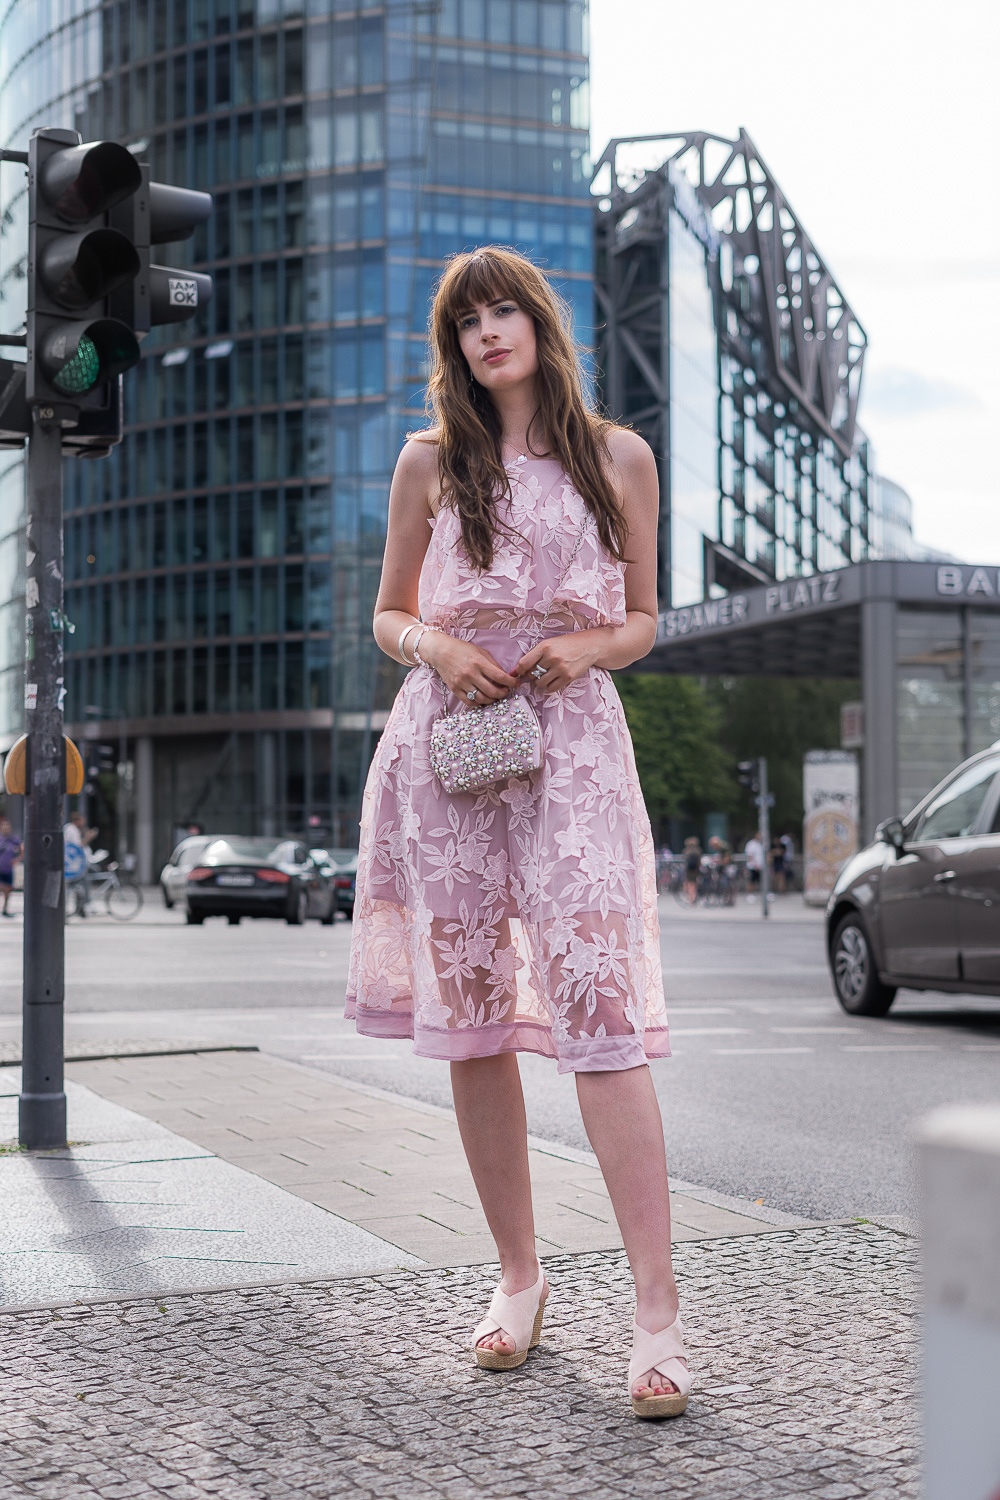 Hochzeitsgast-Outfit in Rosa